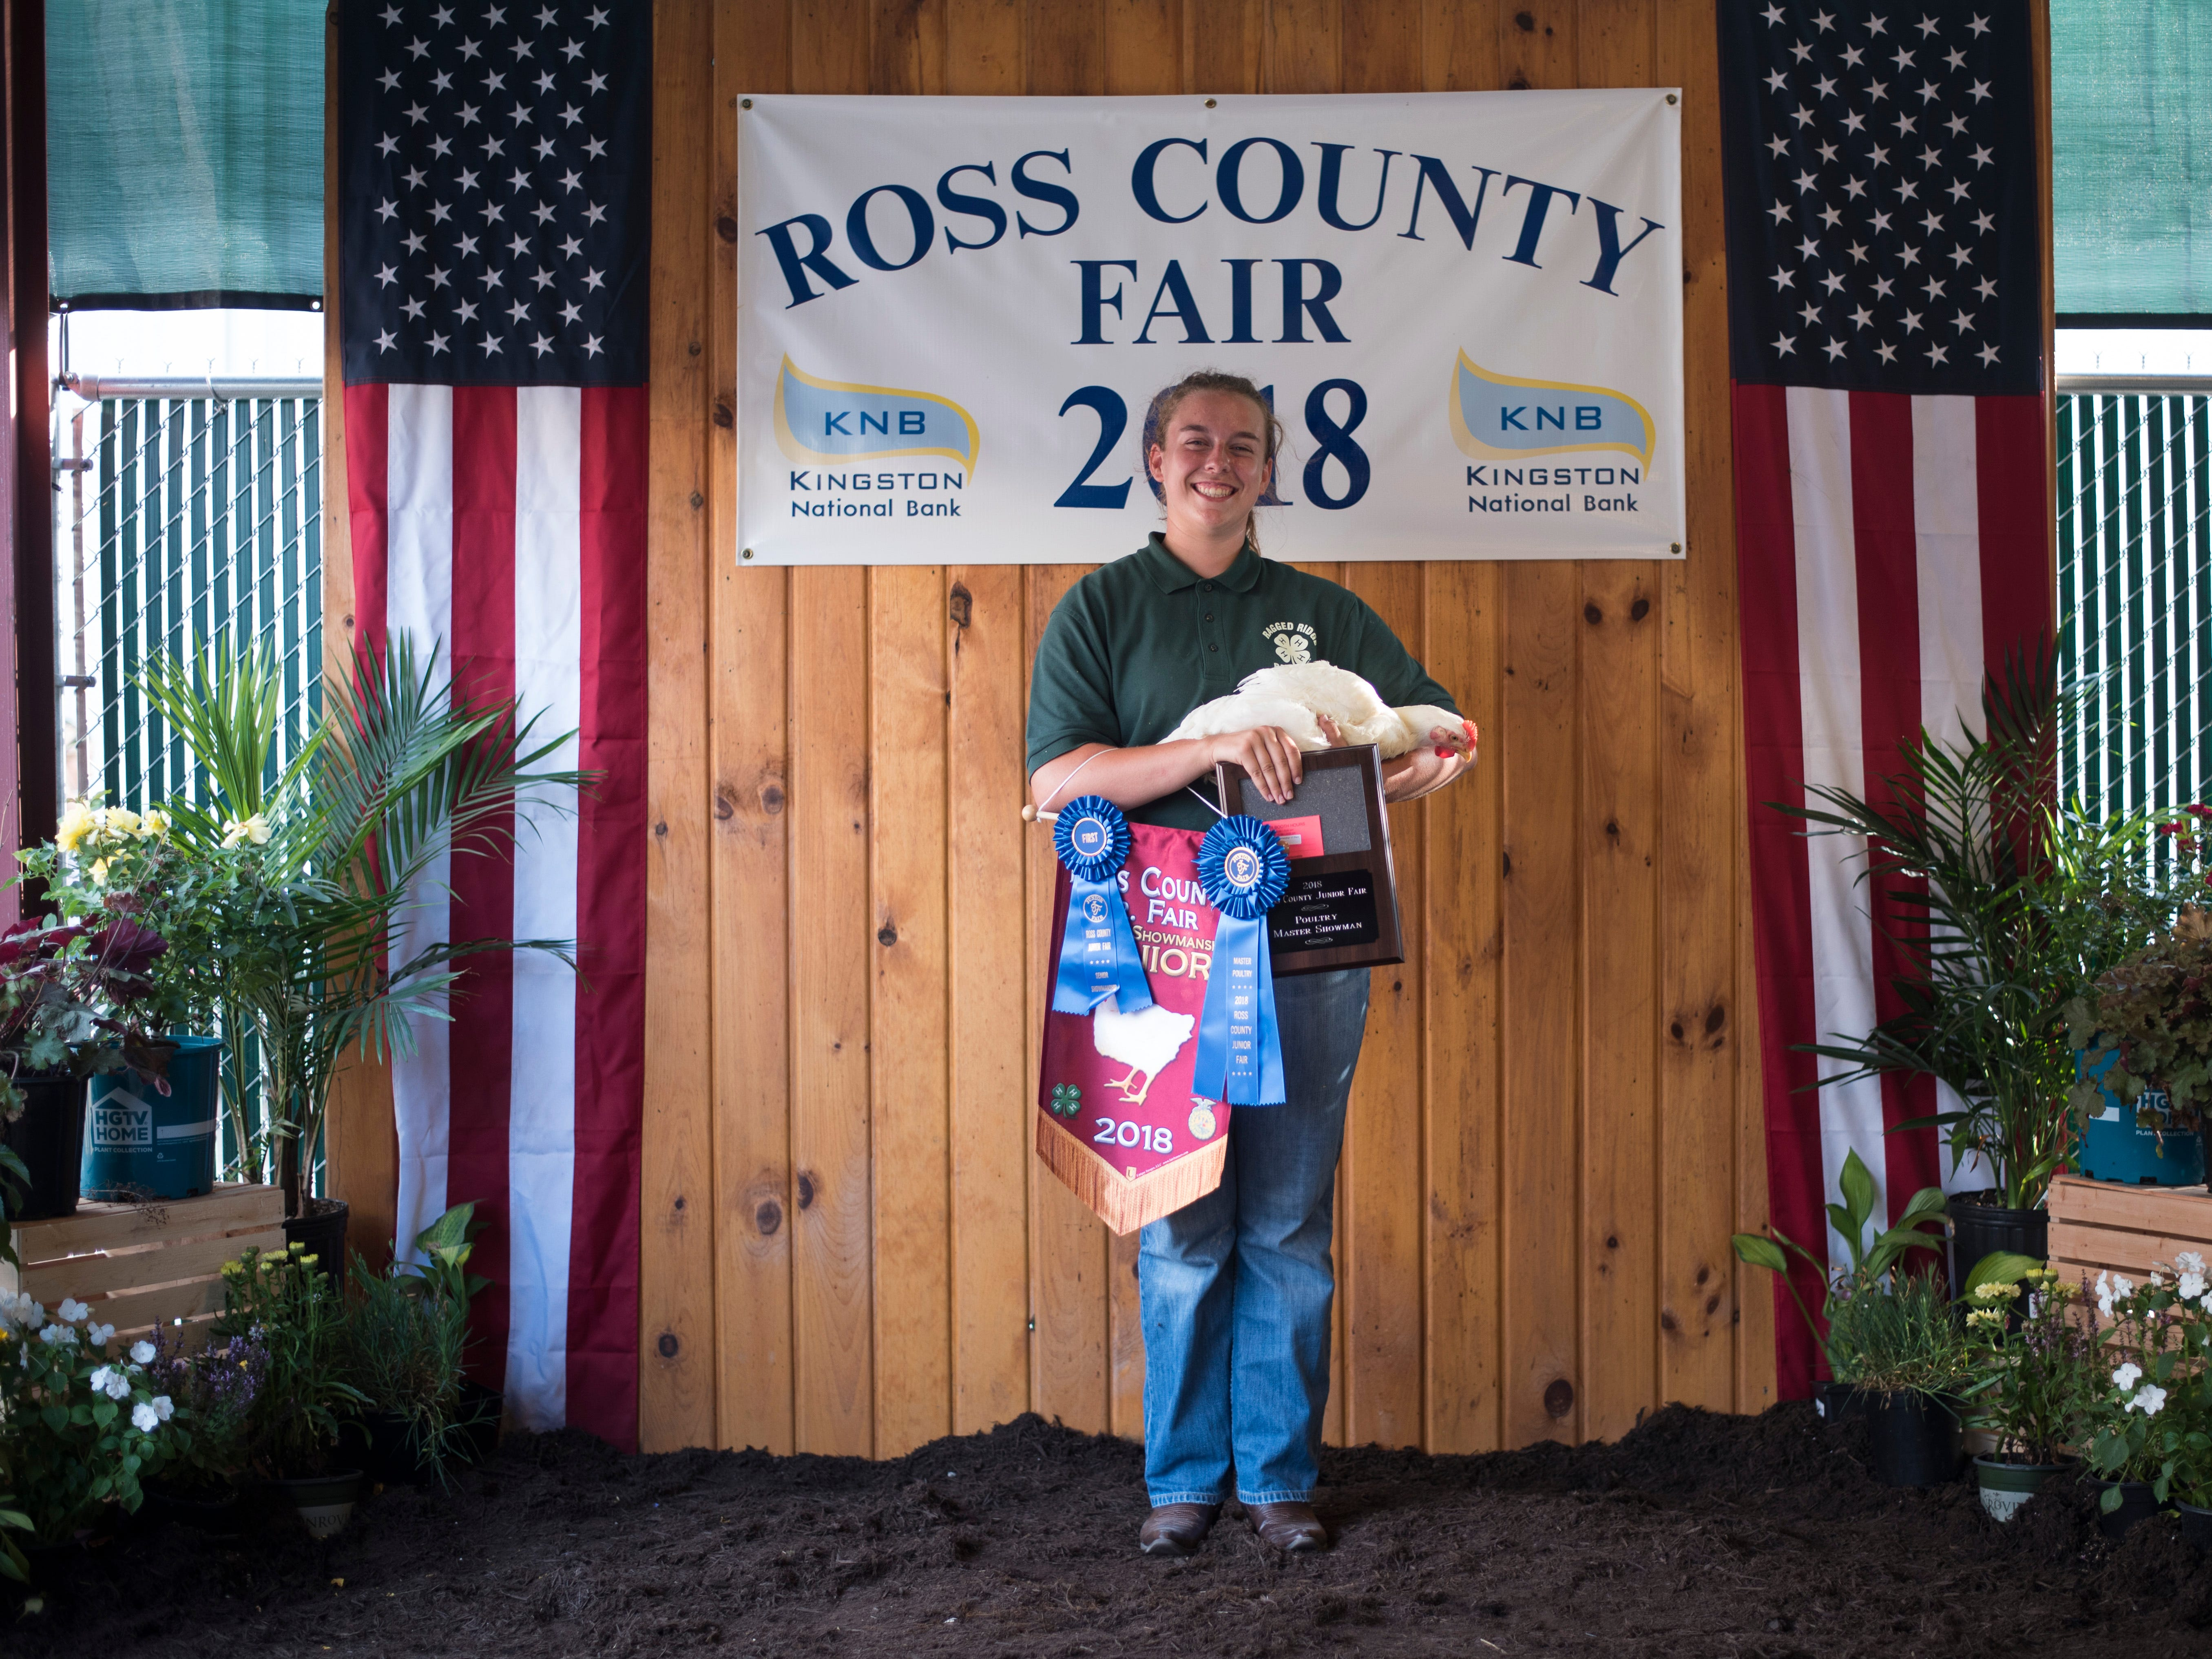 Highlights and portraits of the of the 2018 Jr. Fair Poultry Production and Fancy Poultry judging and showmanship contest. Ruth Beery, 14, poses after receiving Poultry Showman Senior and Poultry Master Showman at the 2018 Ross County Fair on Monday, August 6.